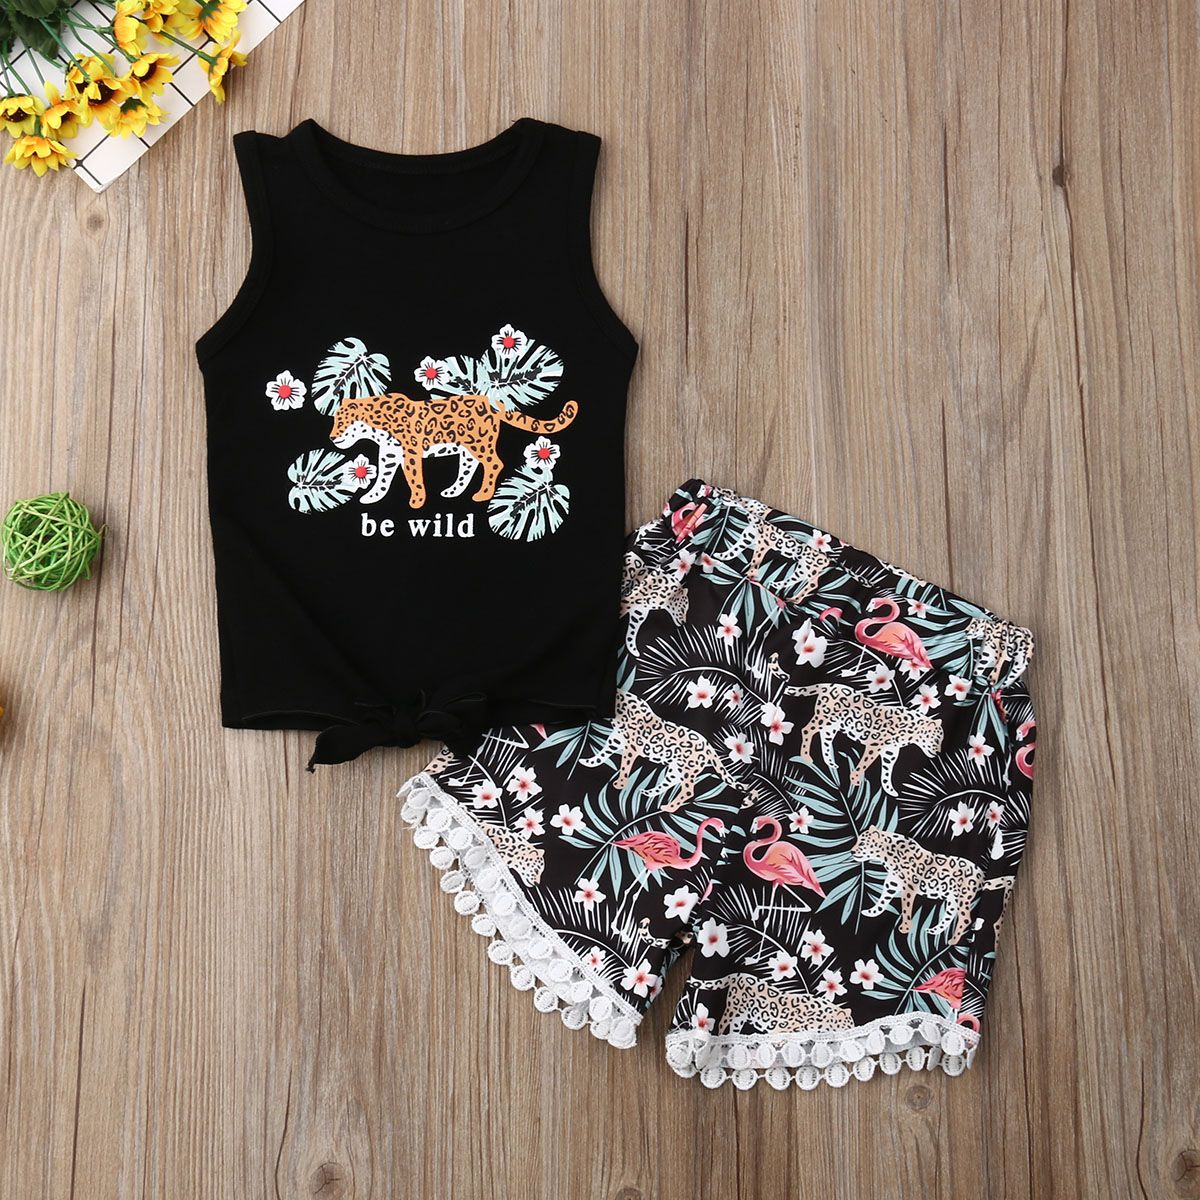 Pudcoco Summer Newest Toddler Baby Girl Clothes Sleeveless Leopard Flower Print Tops Tassels Short Pants 2Pcs Outfits Clothes